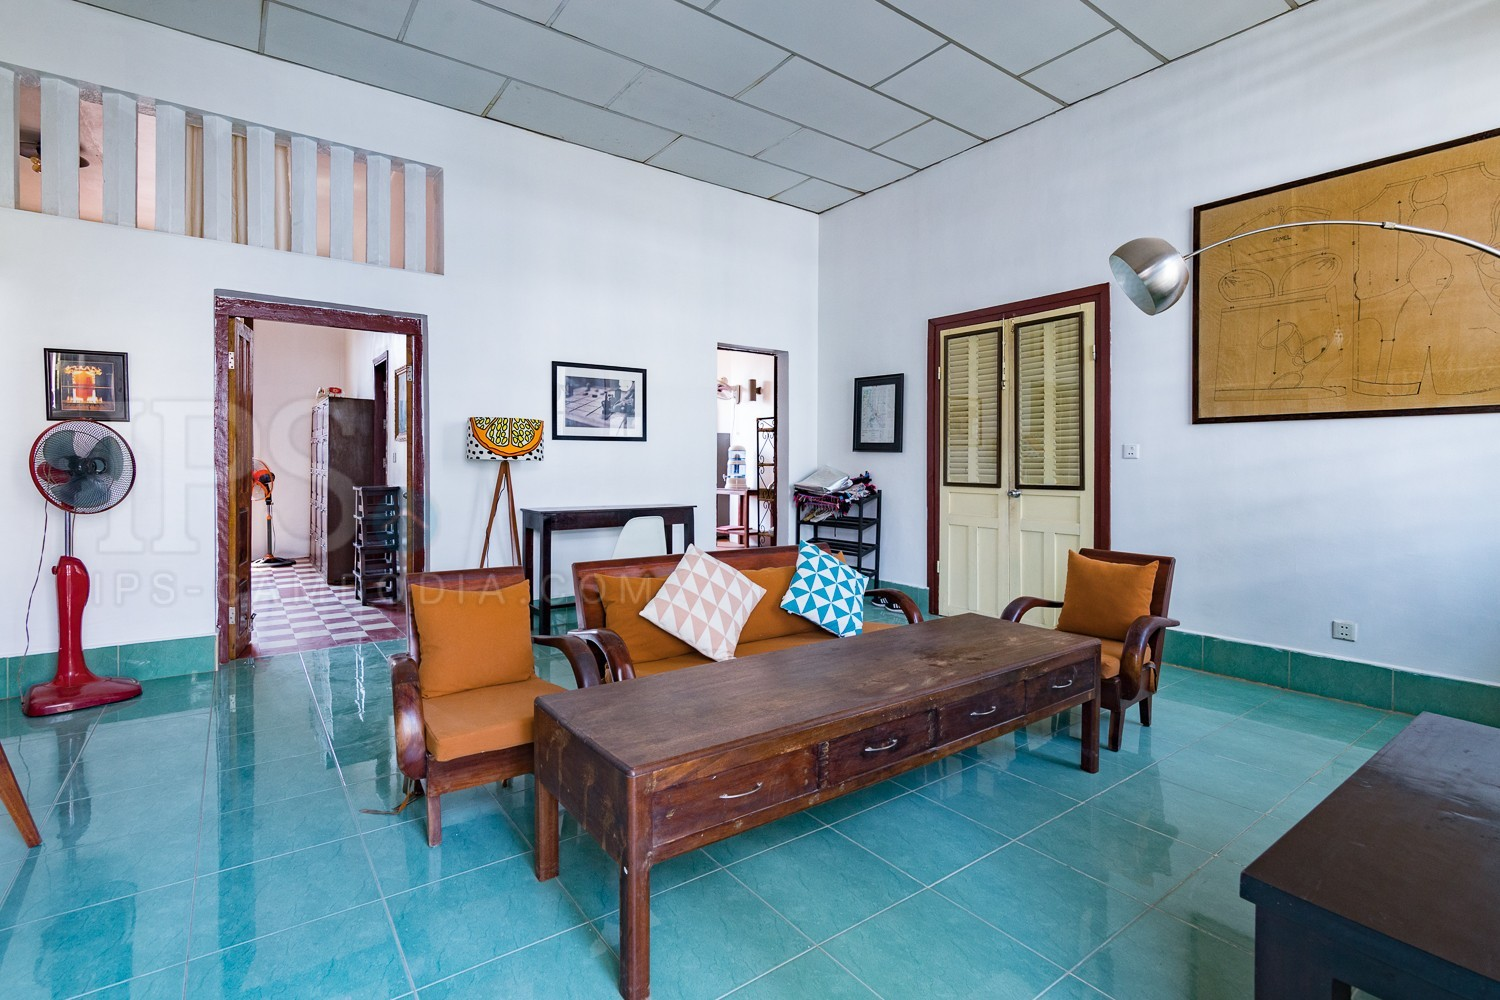 2 Bedroom Apartment For Rent - Wat Phnom, Phnom Penh